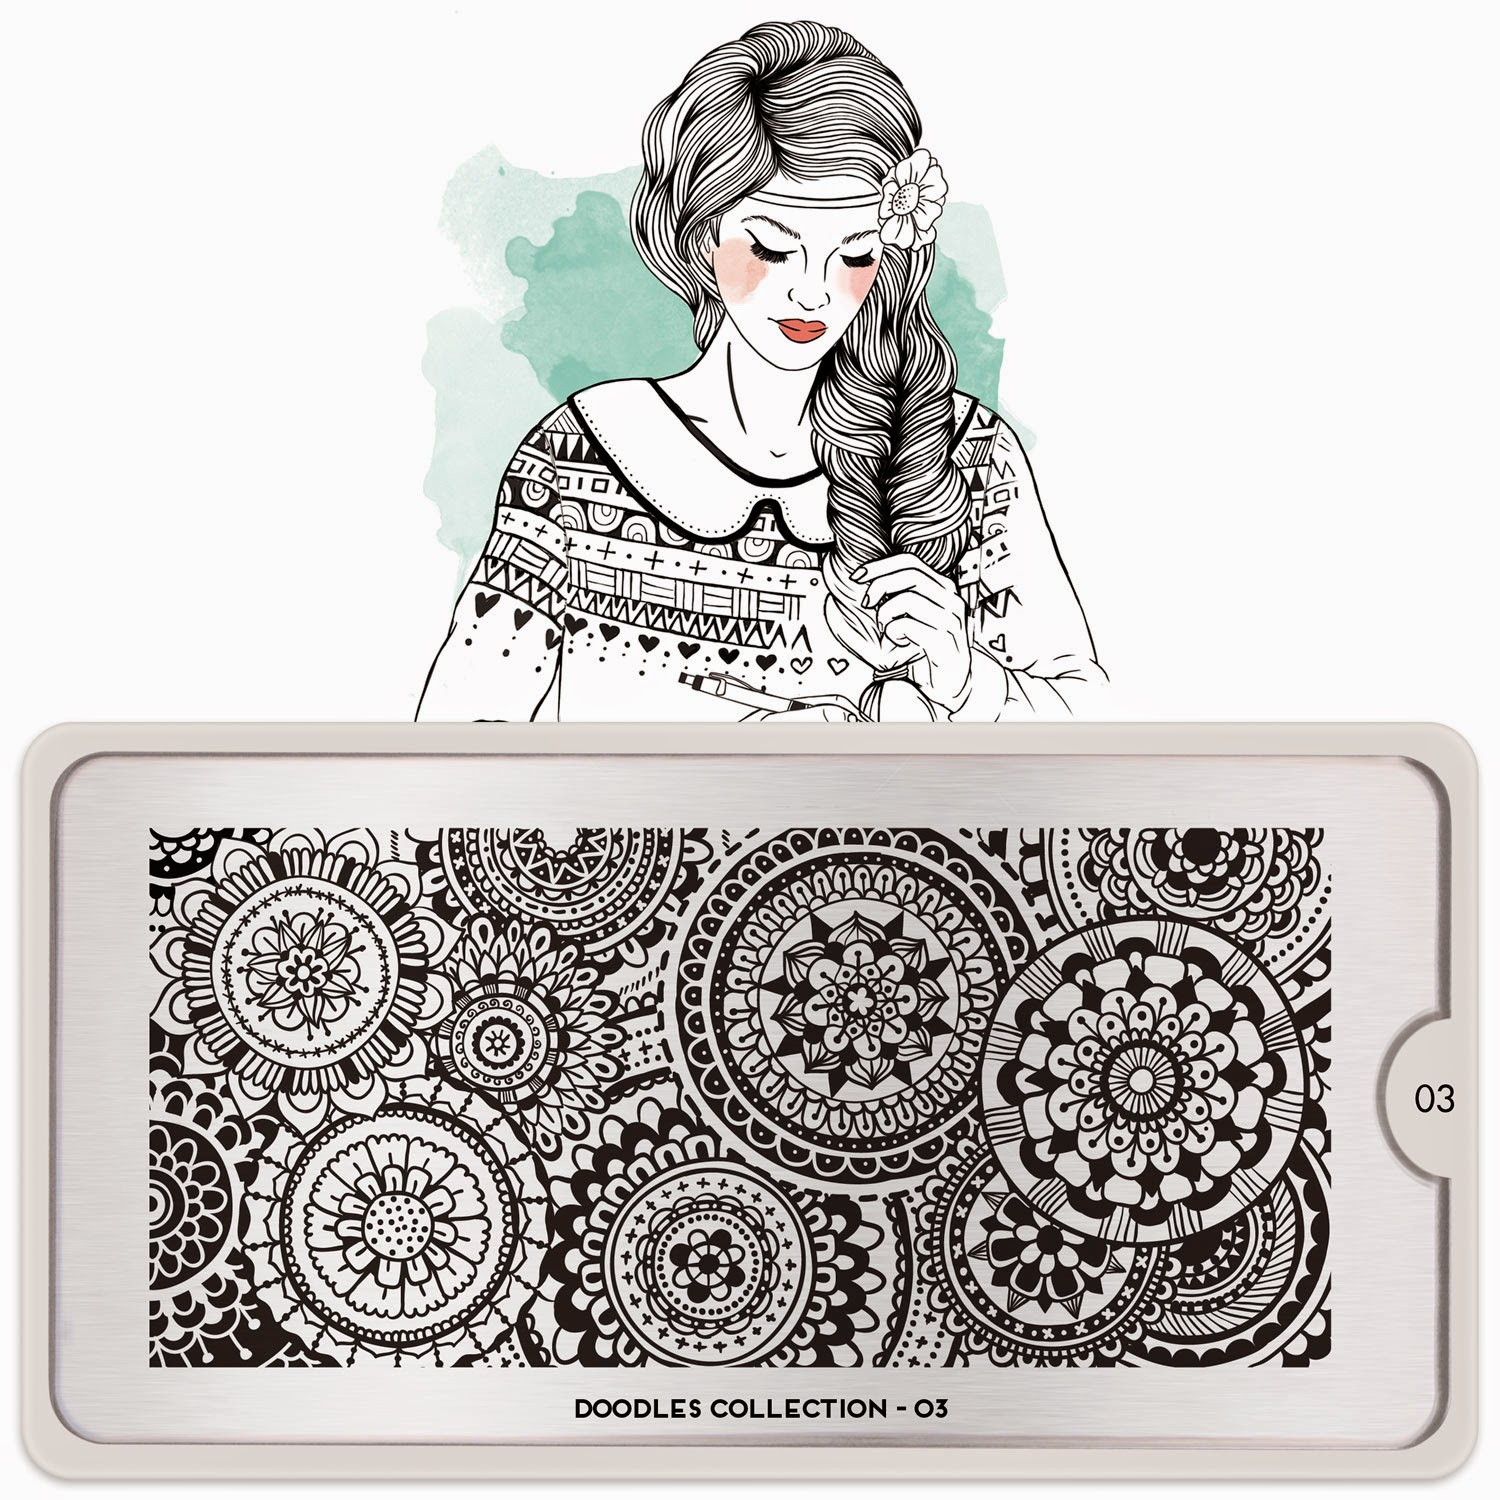 Lacquer Lockdown - Moyou London, nail art stamping blog, Doodles Collection, new nail art stamping plates 2015, new nail art image plates 2015, MoYou London Doodles Collection, nail art stamping, stamping